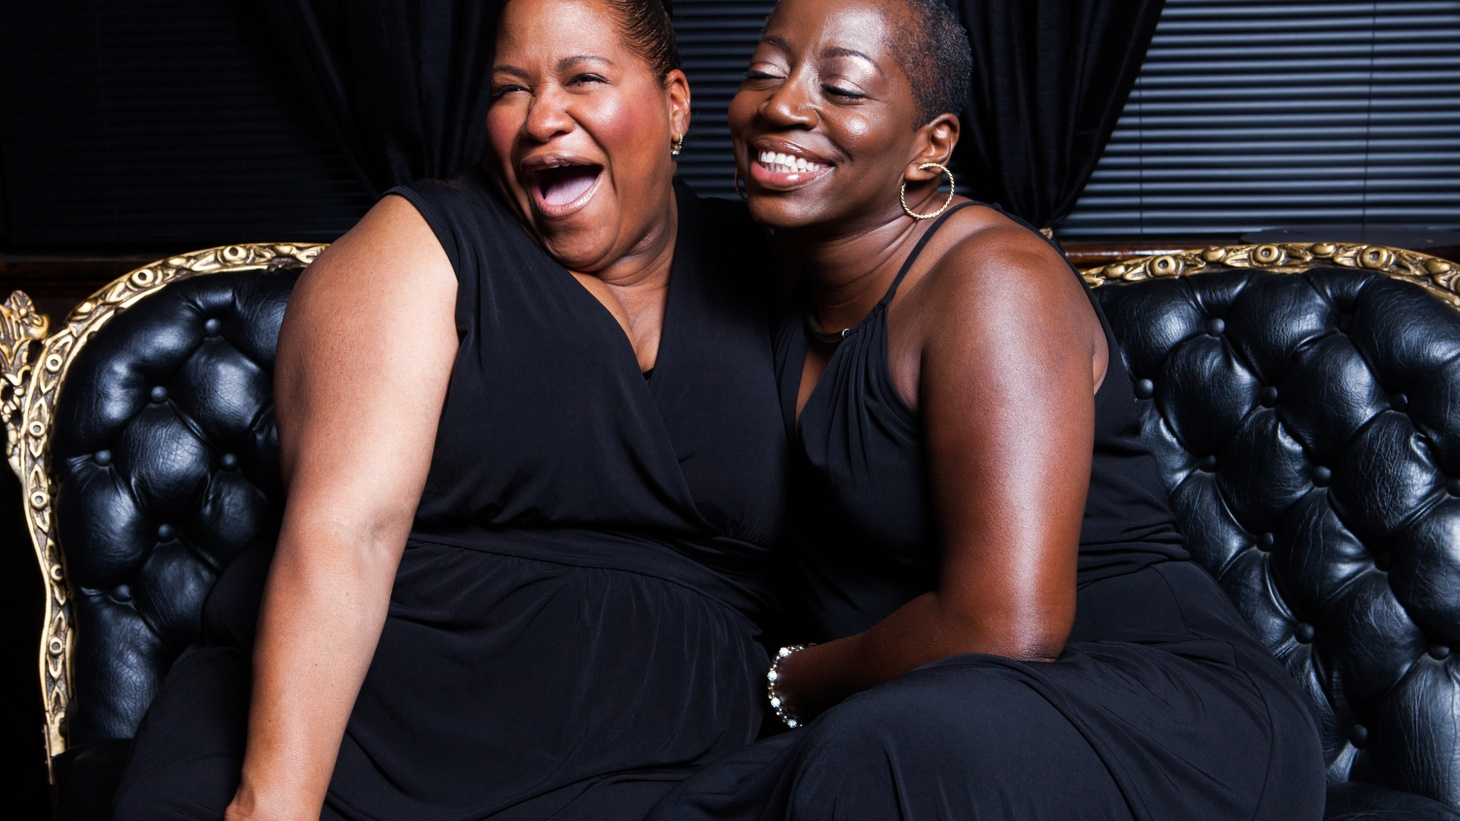 Saun & Starr have been singing together since they met at an open mic in Harlem back in the 80's. They've found the limelight as the duo backing Sharon Jones & The Dap-Kings and now they're releasing their own debut.